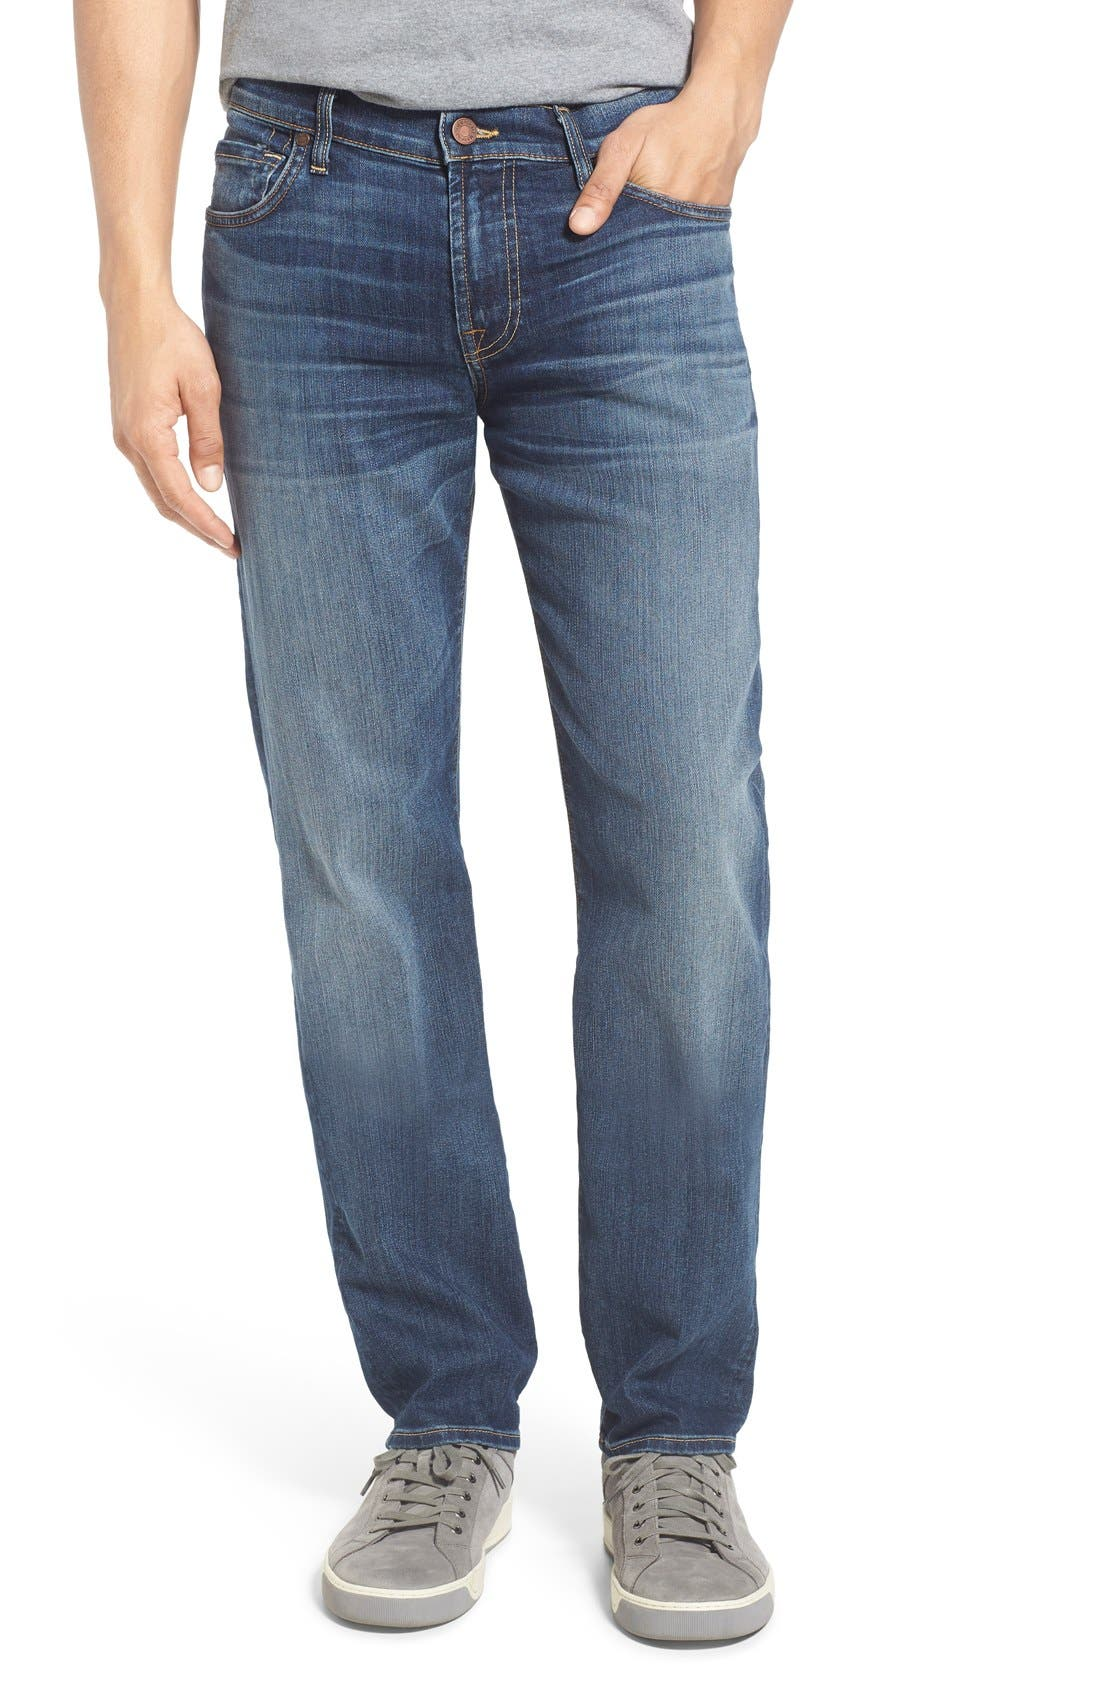 Slimmy Airweft Slim Fit Jeans,                         Main,                         color, Air Weft Riptide